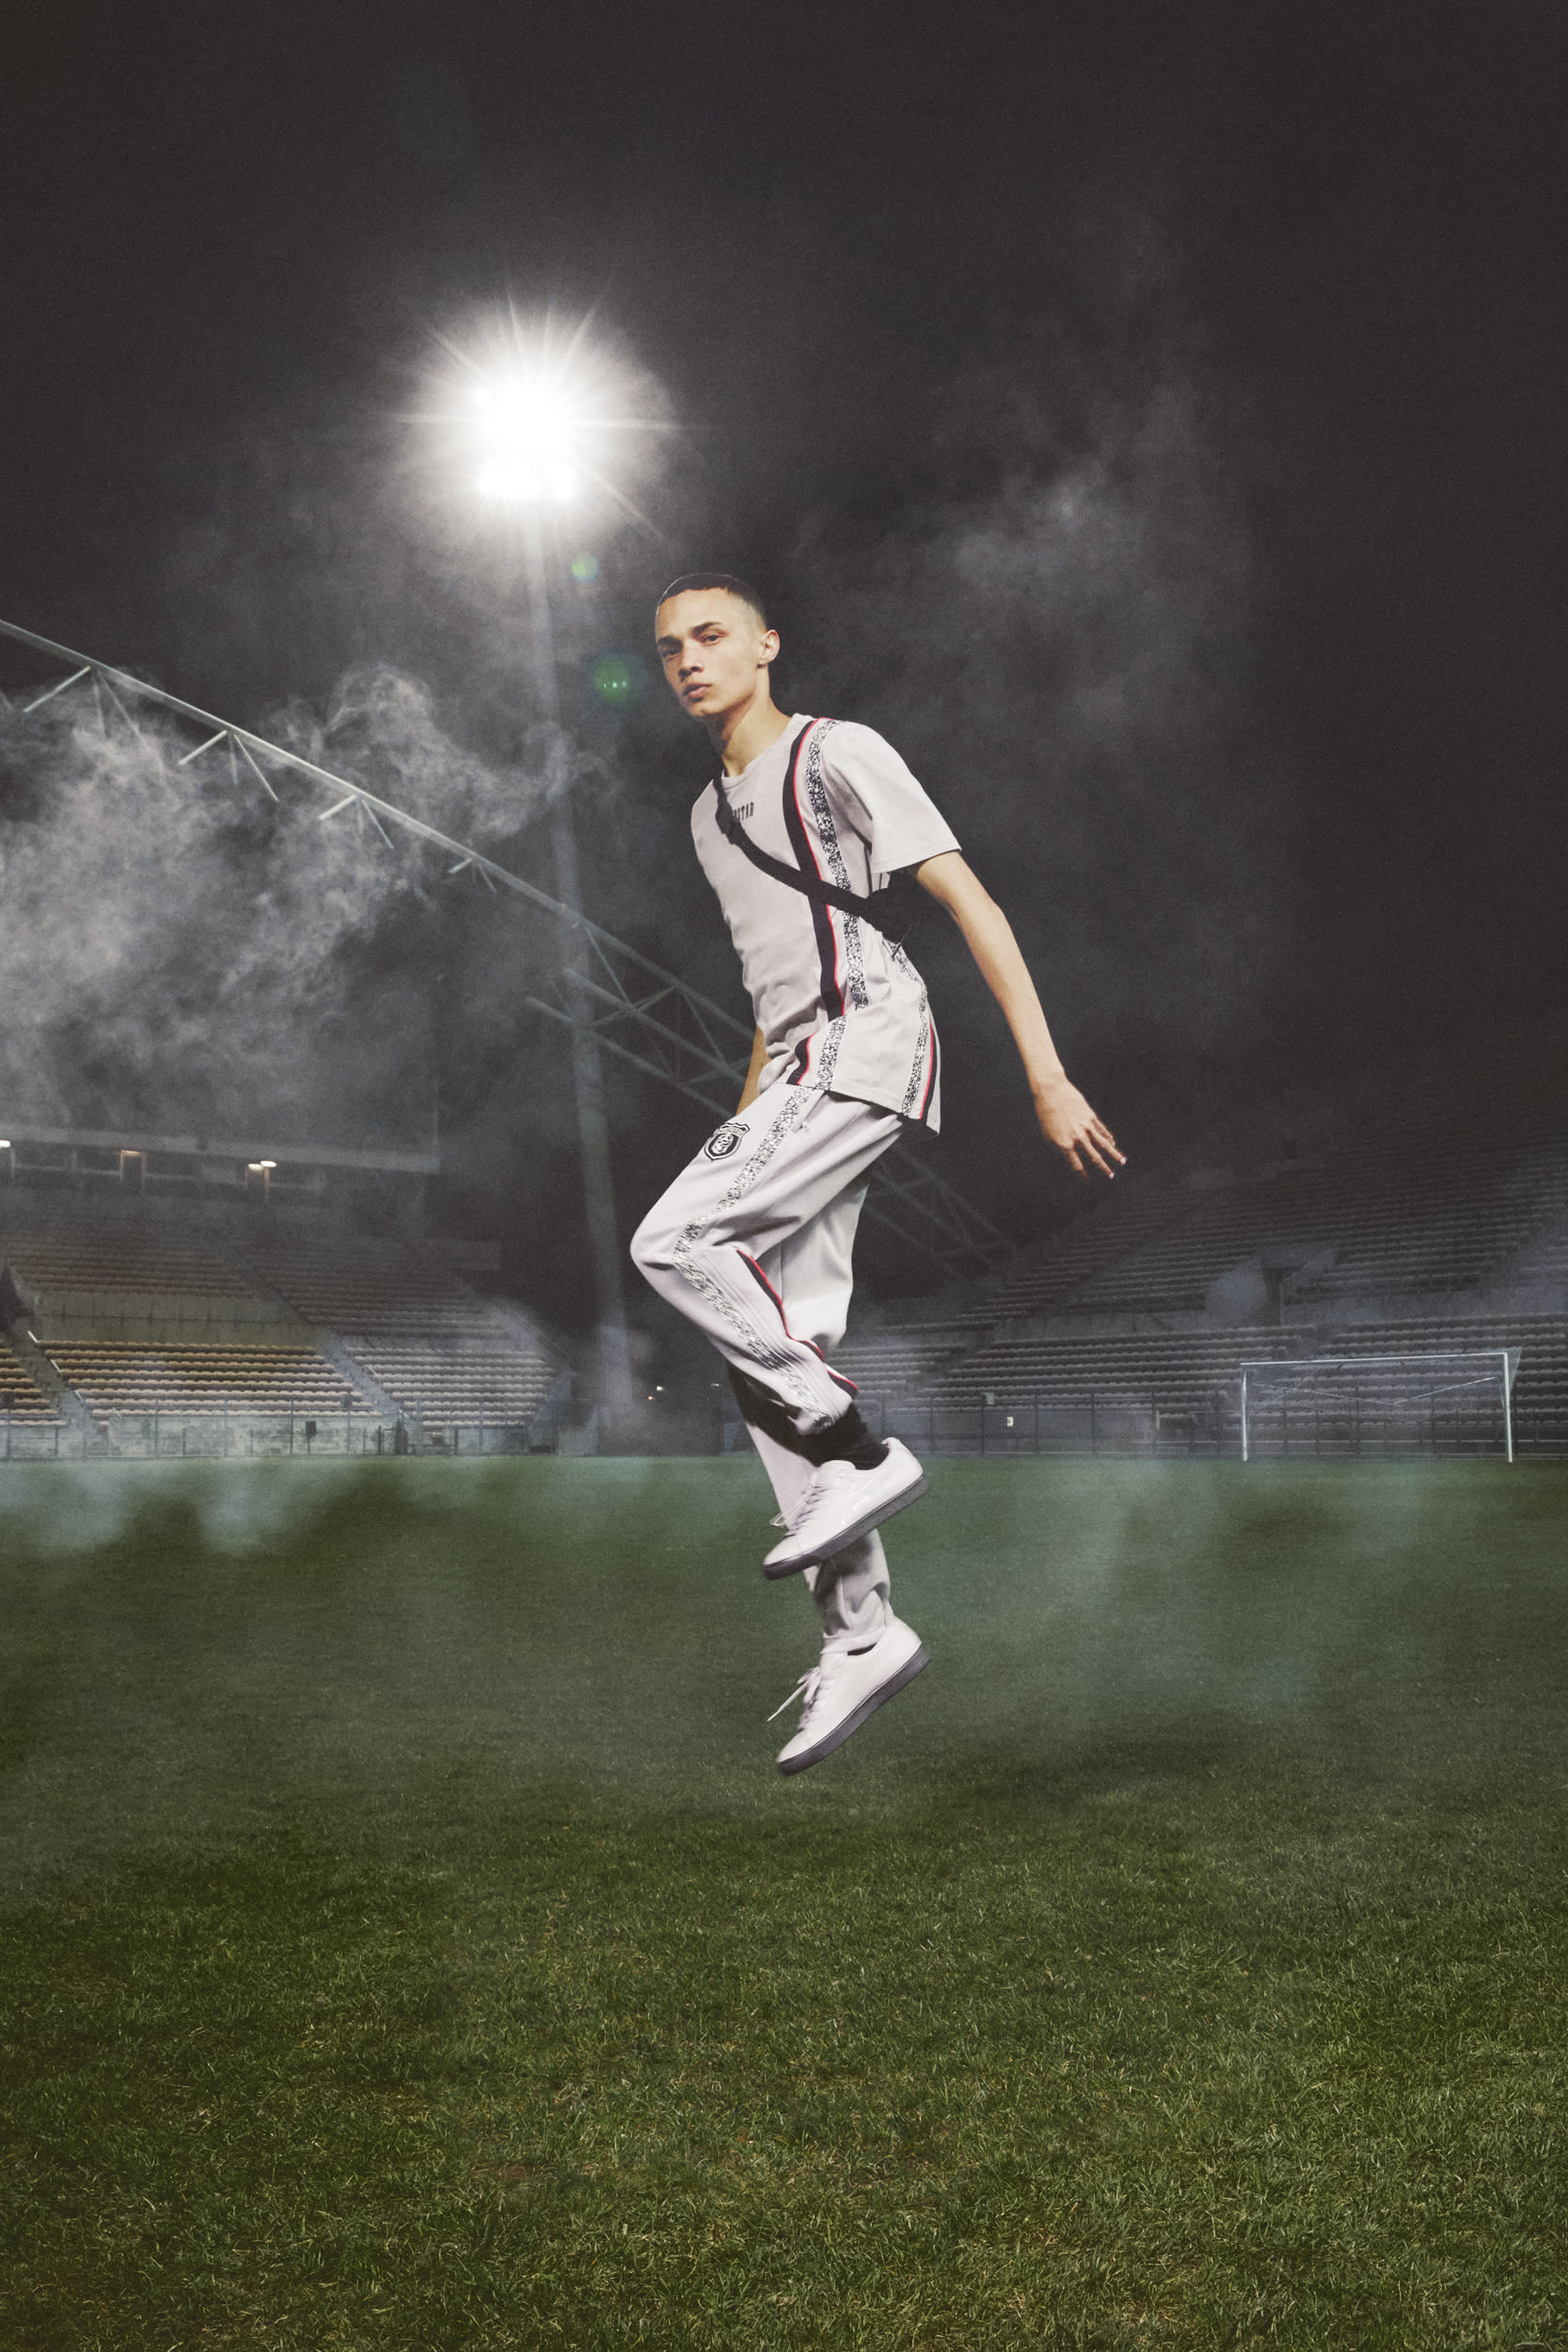 trapstar and puma fall  u0026 39 18 collaboration brings football to the forefront of fashion